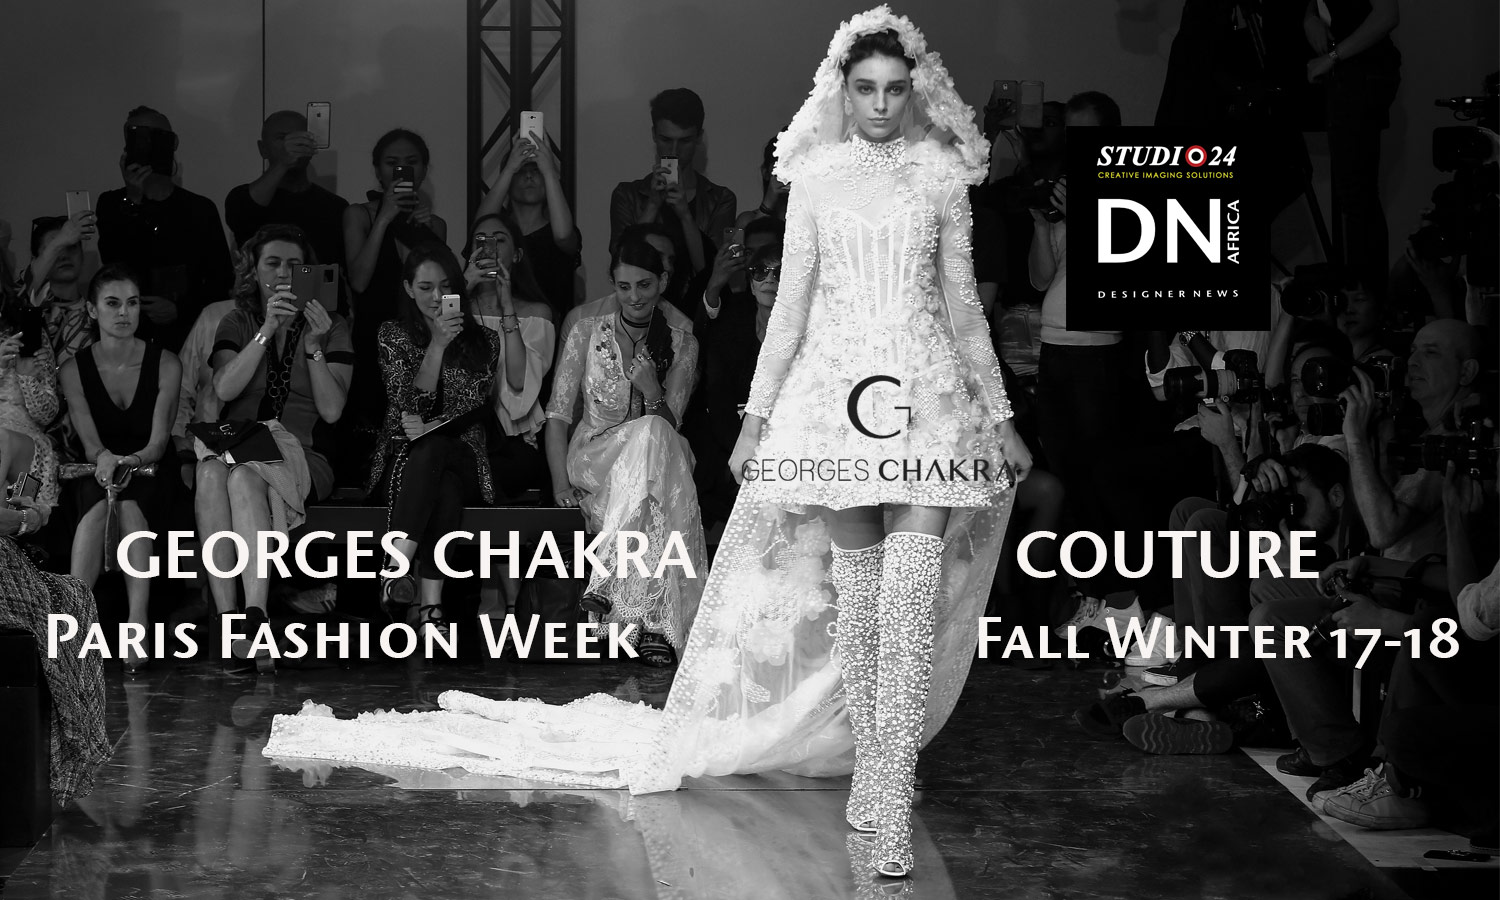 AFRICAN FASHION STYLE MAGAZINE - DESIGNER GEORGES CHAKRA COUTURE